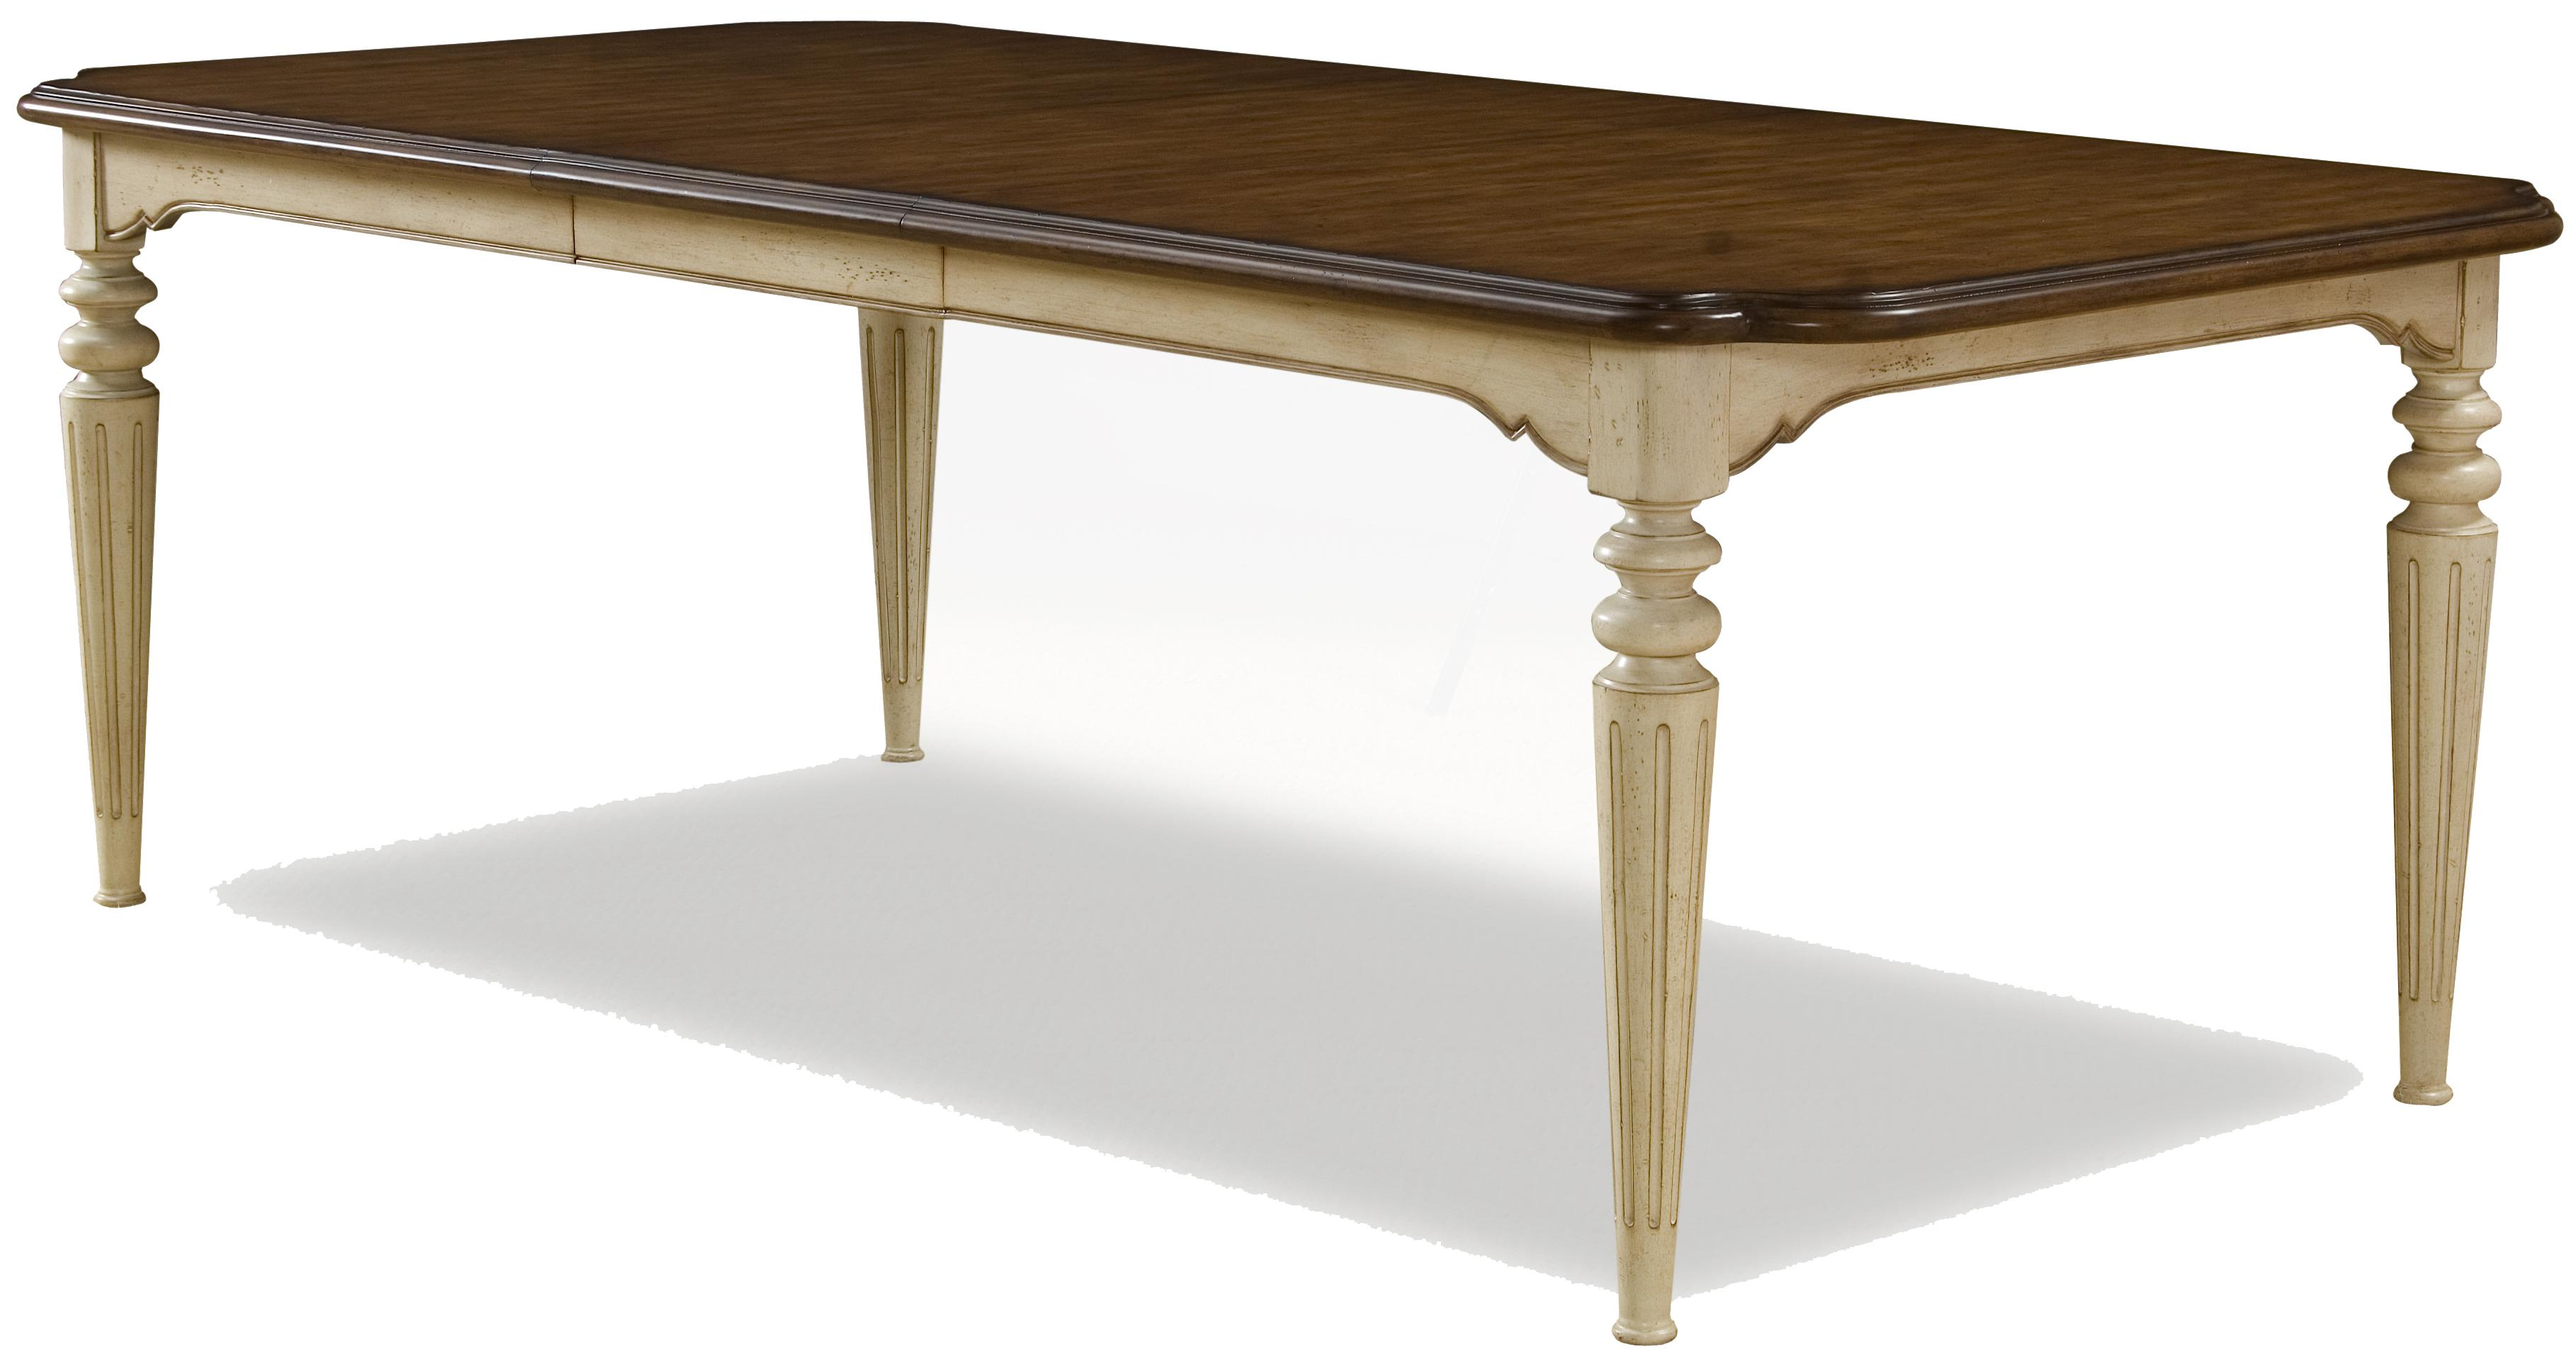 Rectangular two tone dining table by a r t furniture inc for Dining room table for 2